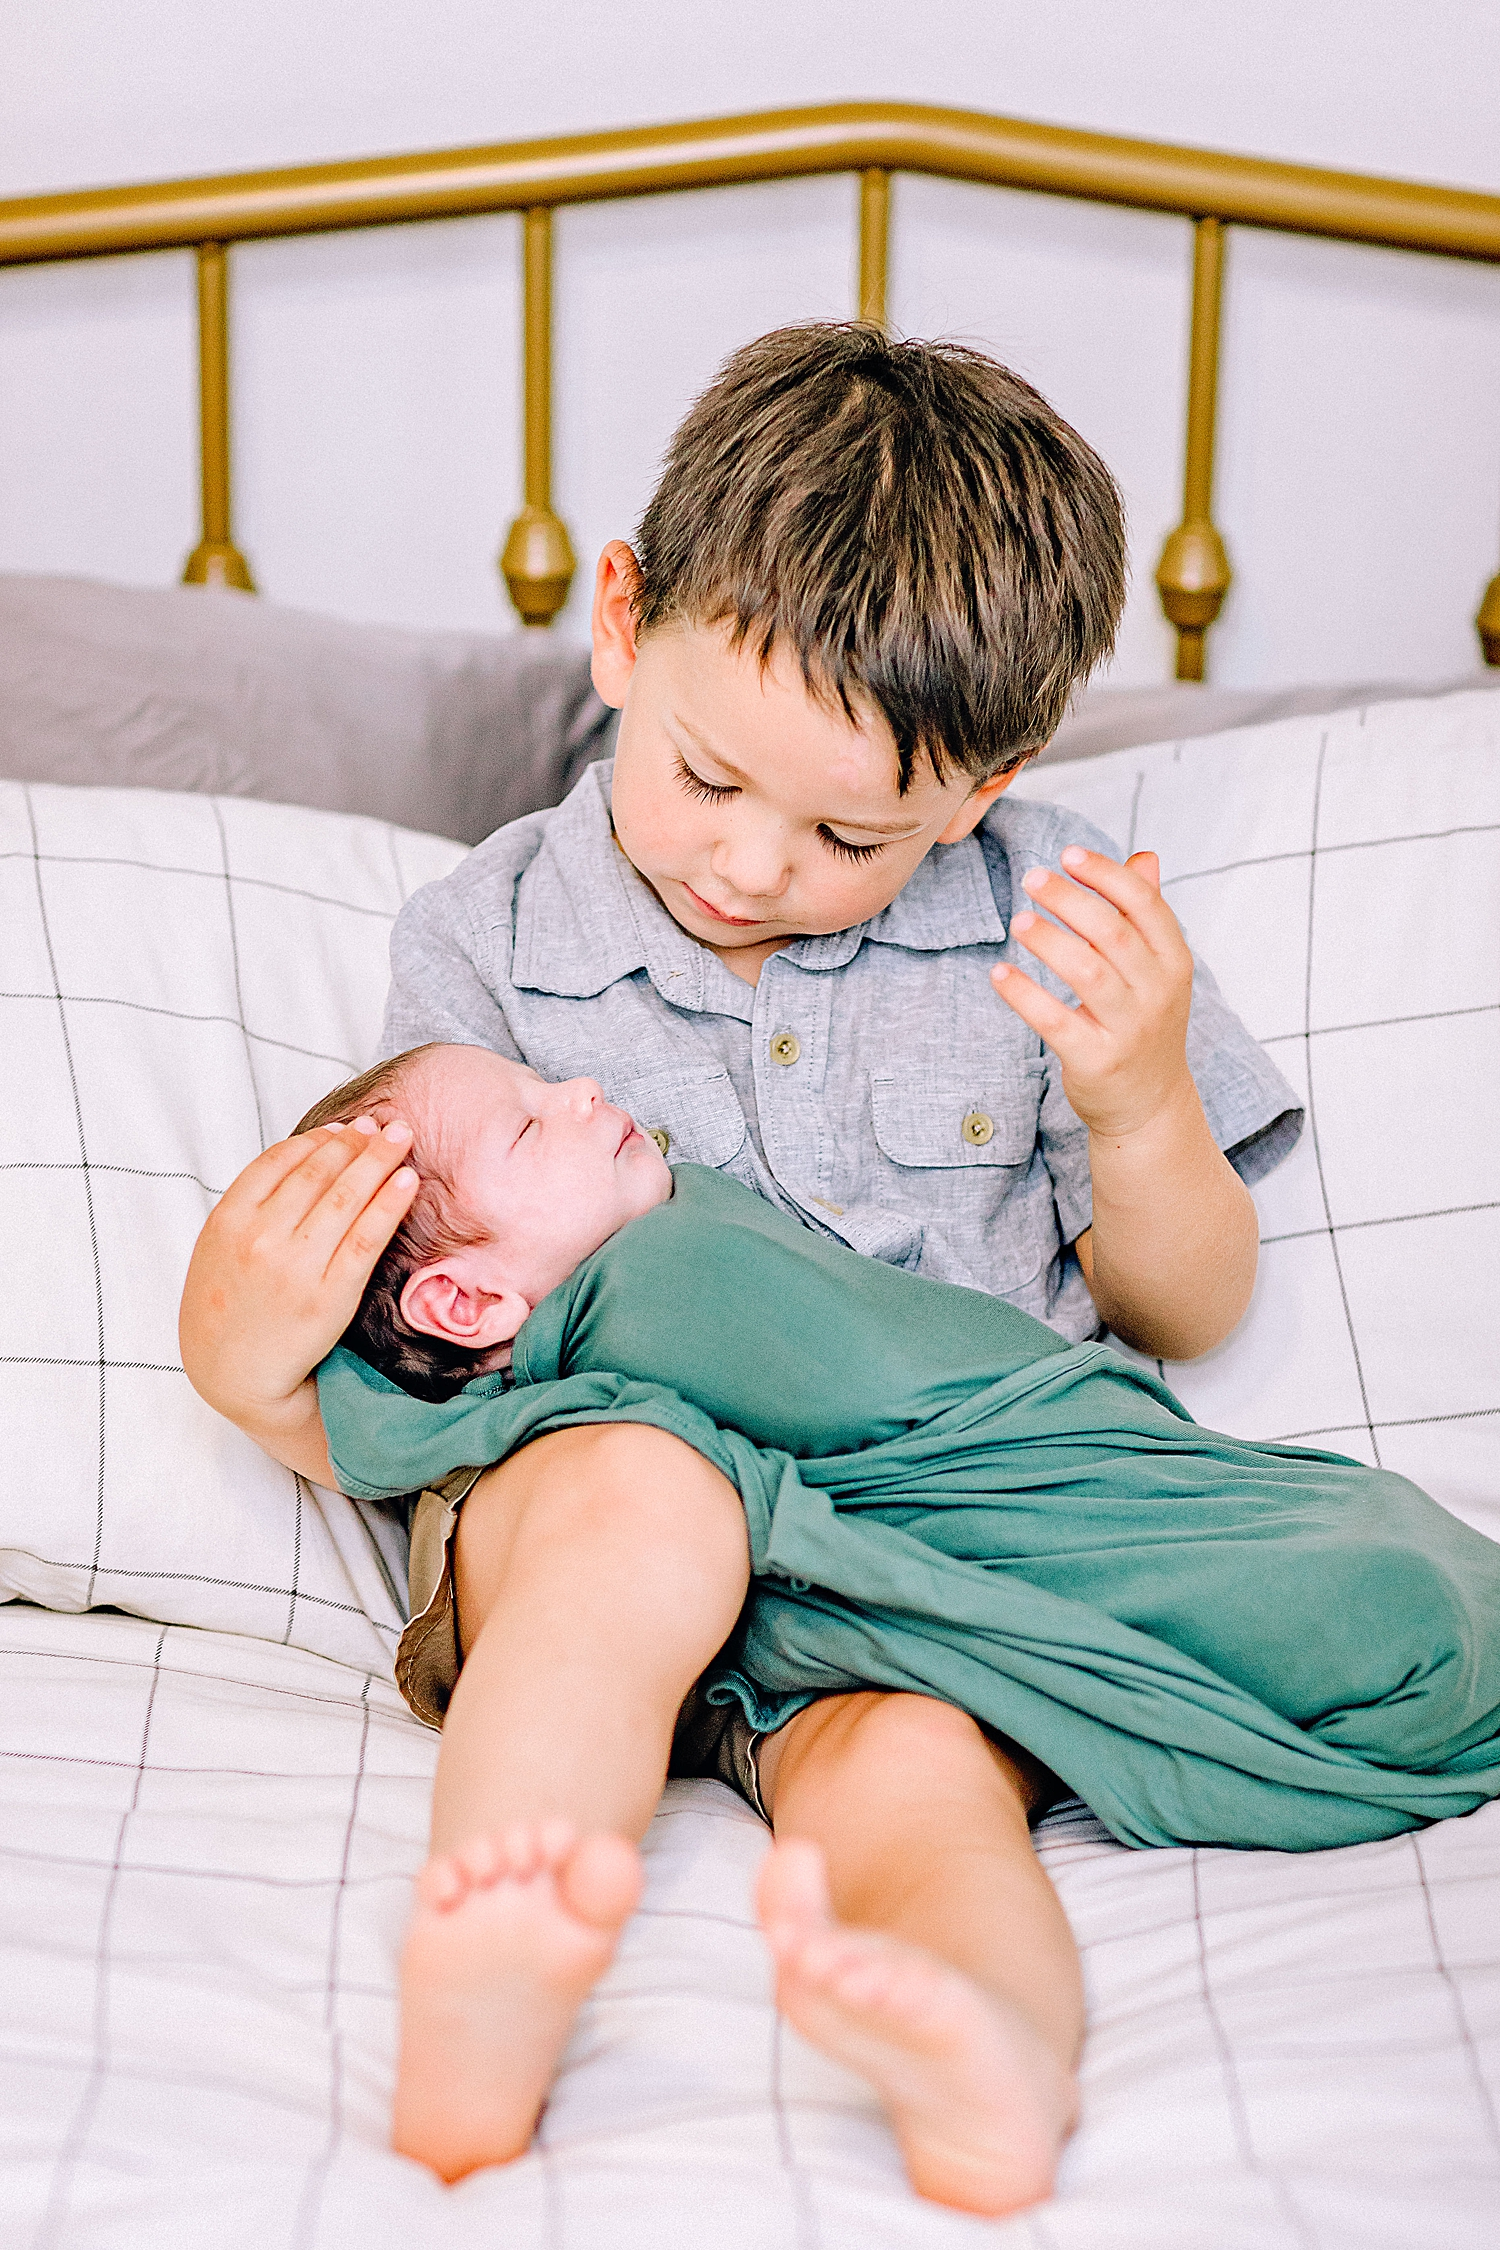 Carly-Barton-Photography-Lifestyle-Newborn-Photographer-Brothers-Family-Photos-Texas_0022.jpg